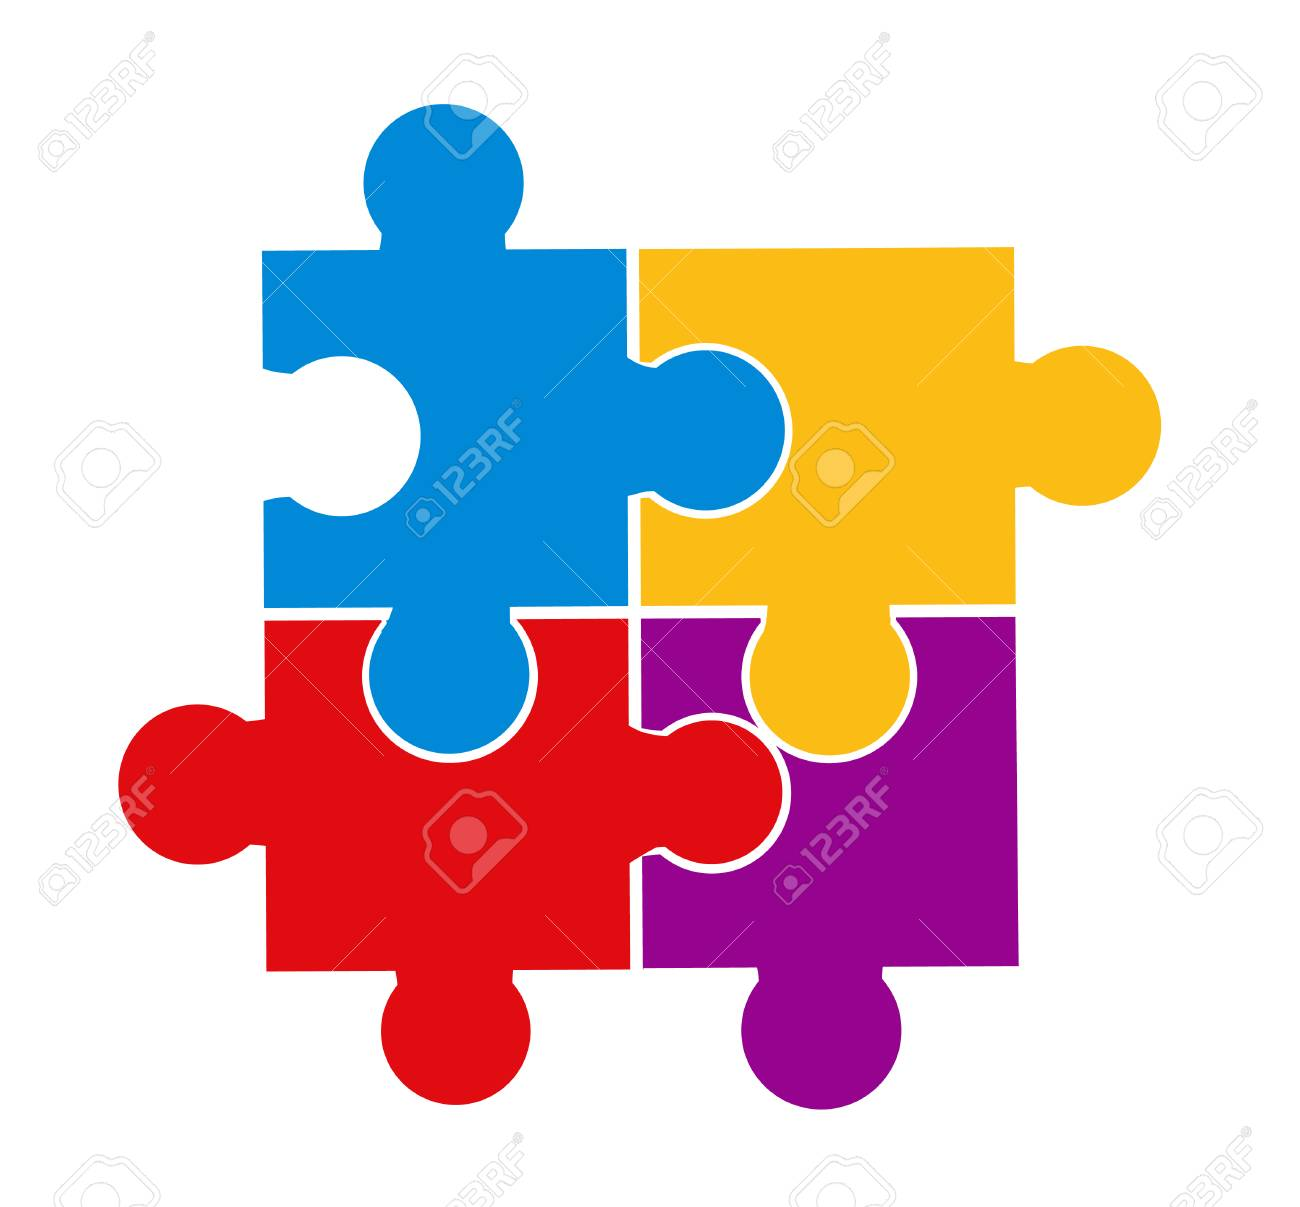 Vector illustration of puzzle pieces - 121667421